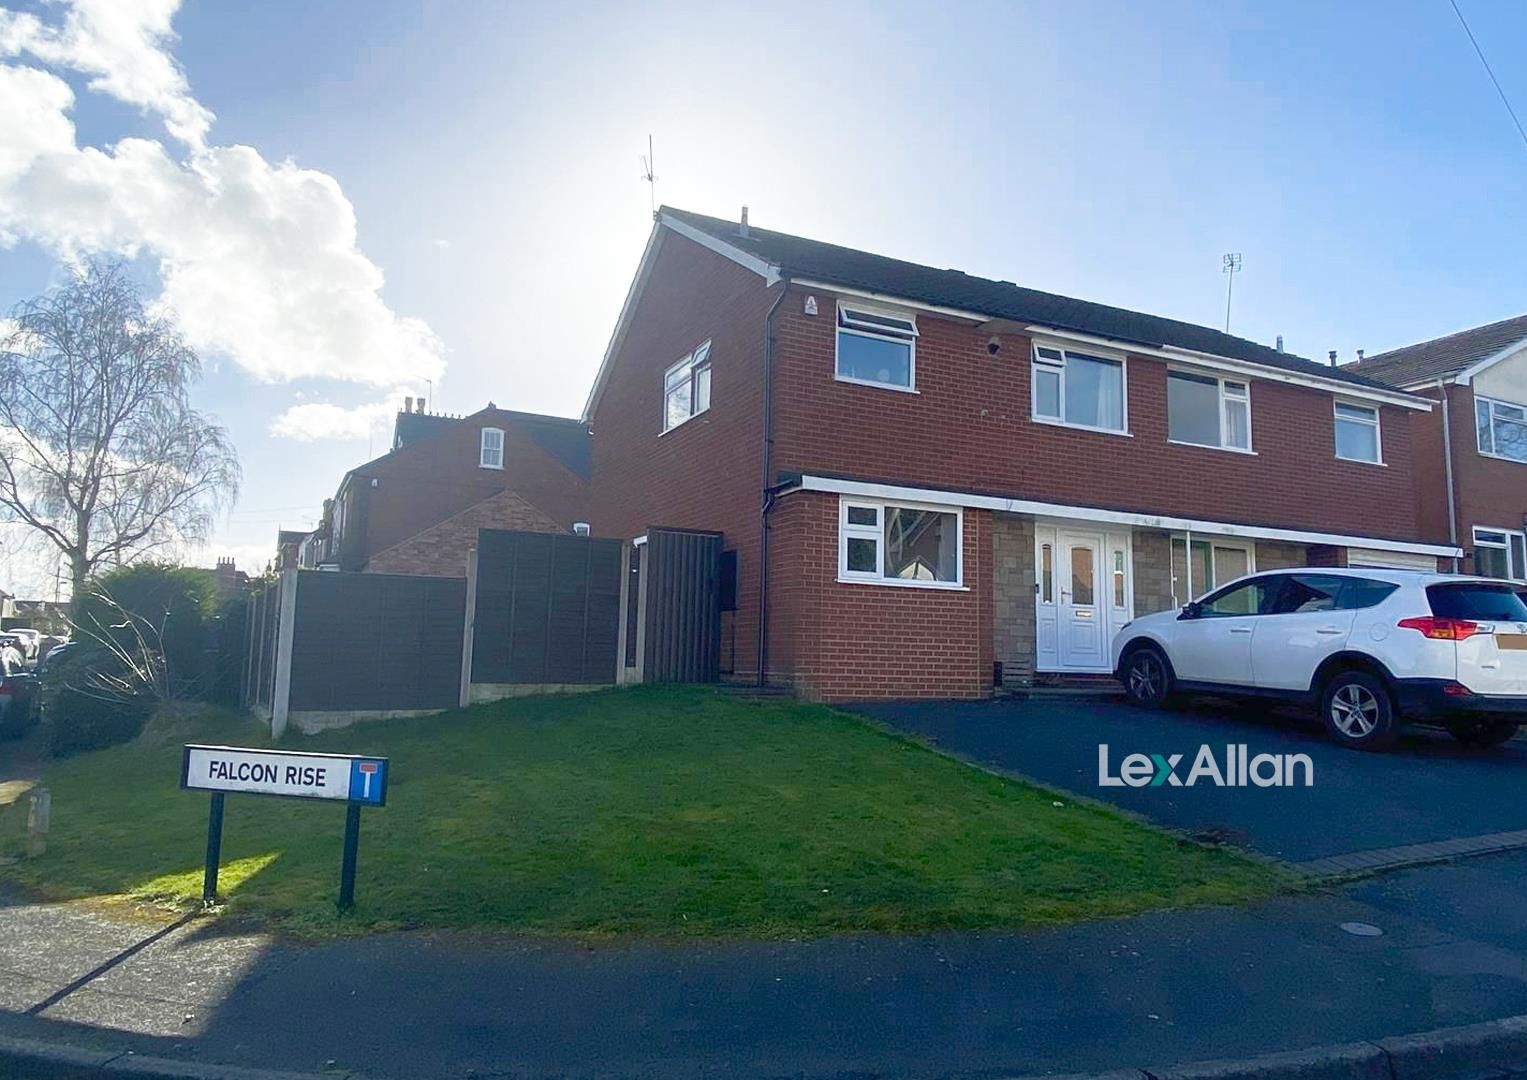 3 bed semi-detached for sale in Wollaston, DY8